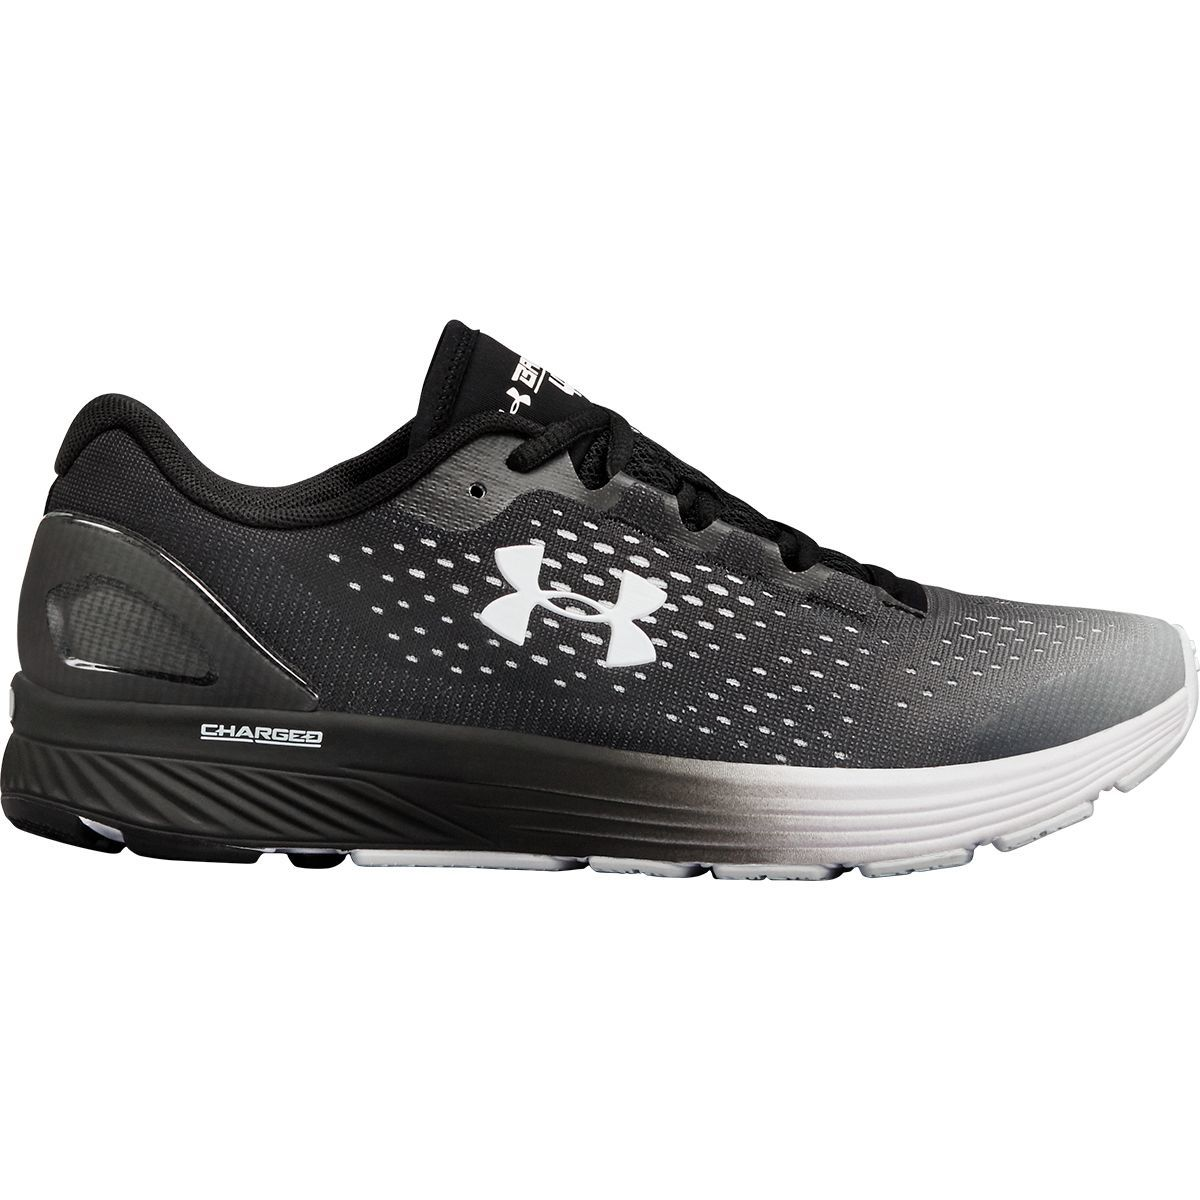 Under Armour Charged Bandit 4 Running Shoe - Women's